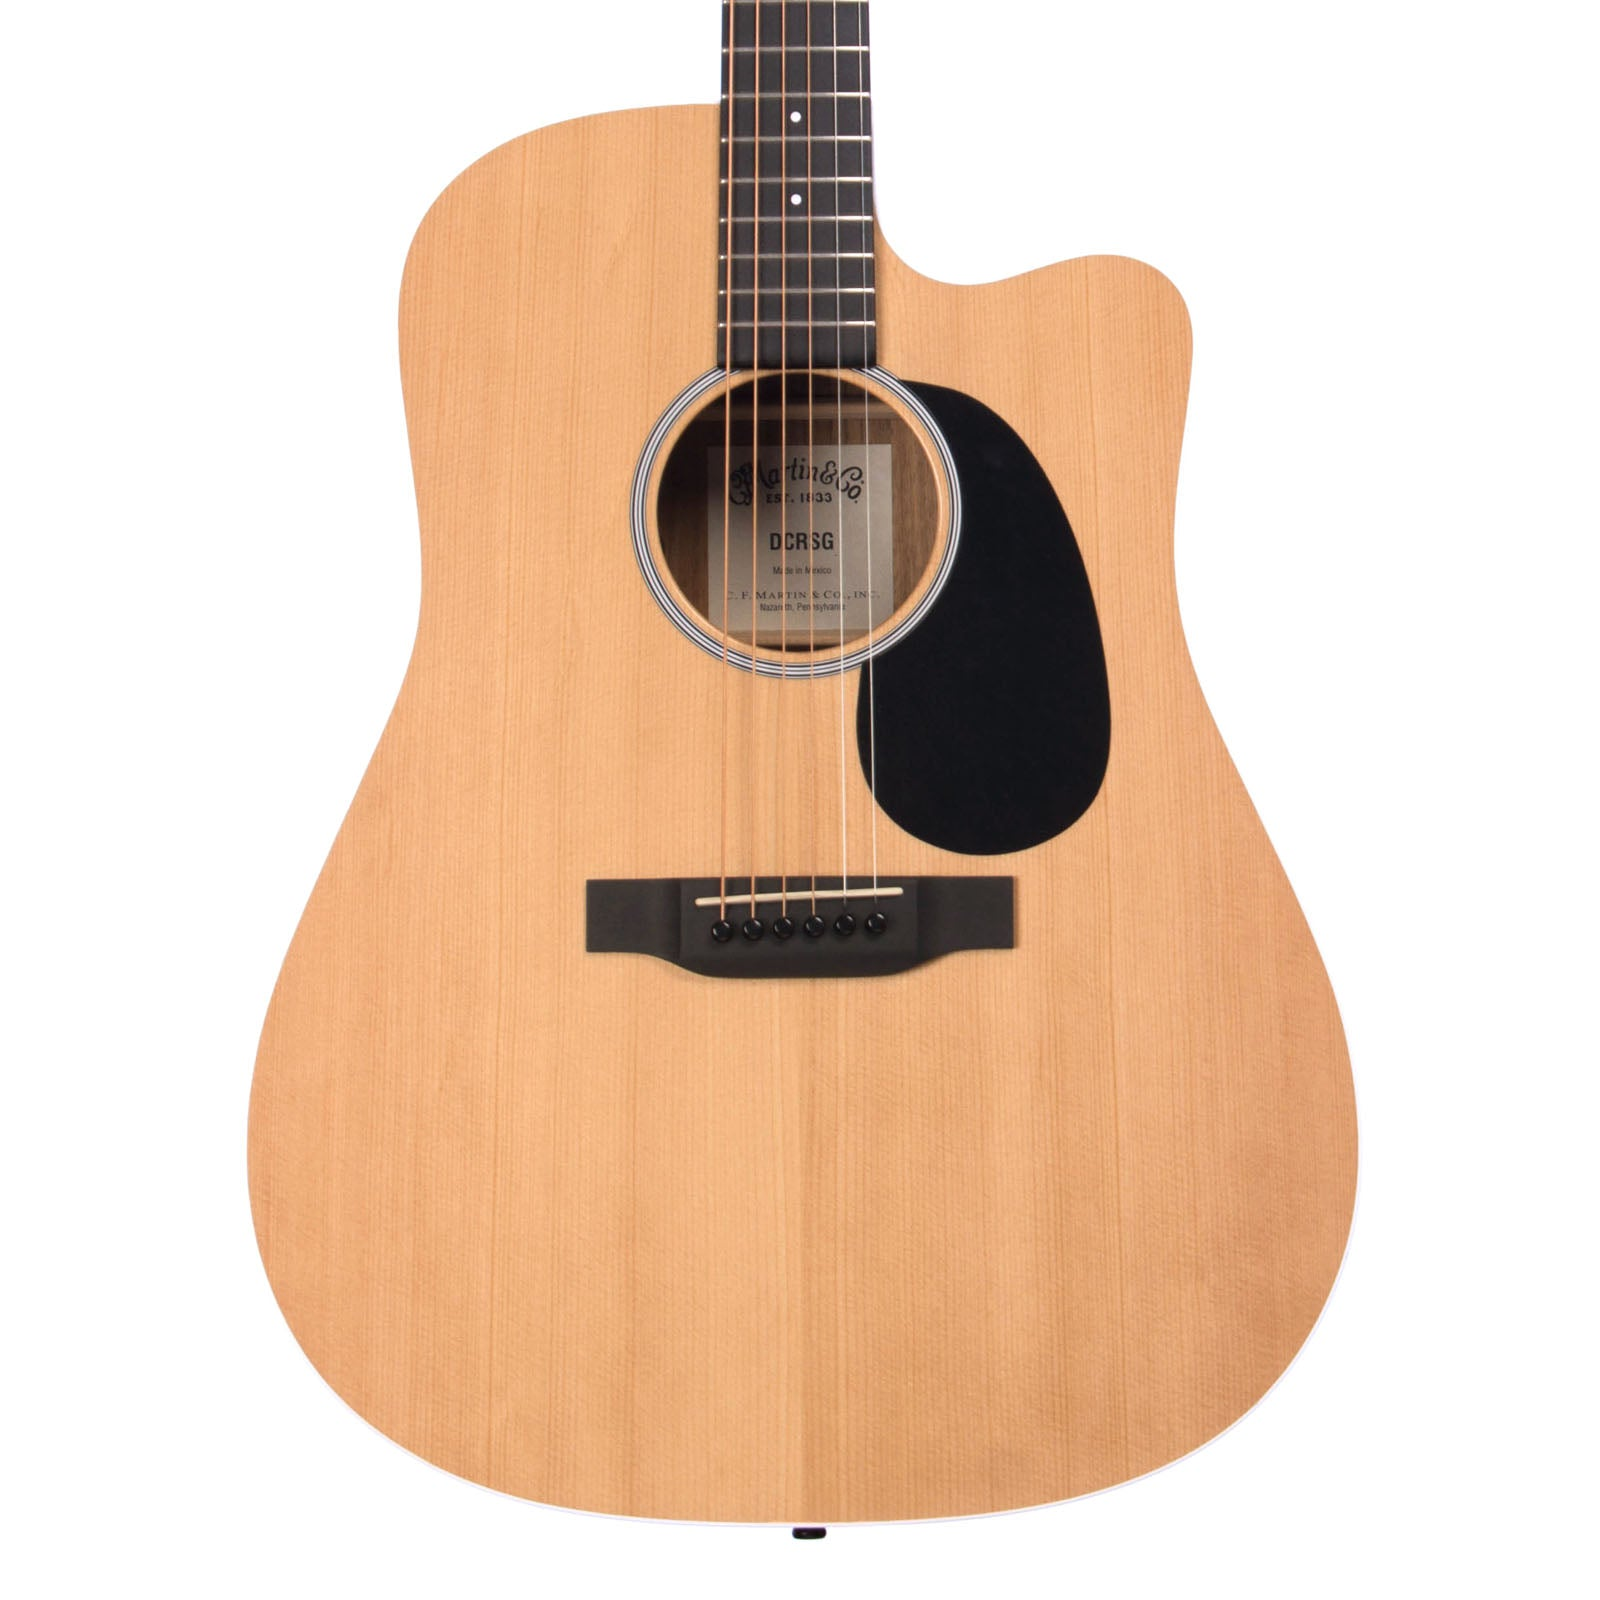 918926979e7 ... Acoustic / Electric Dreadnought Guitar with OHSC. Tap to expand